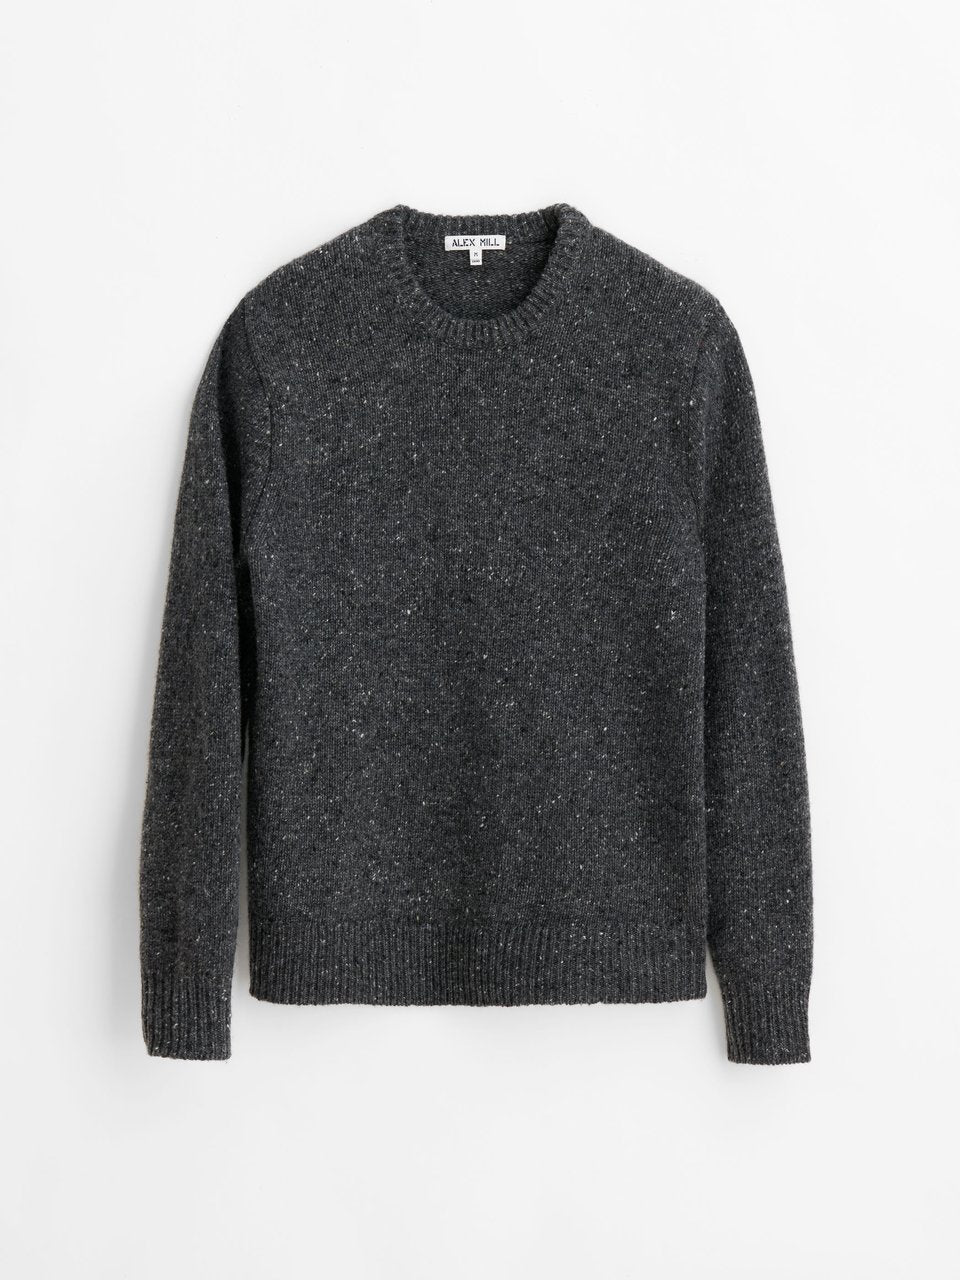 Alex Mill Donegal Crew Neck Sweater - Charcoal